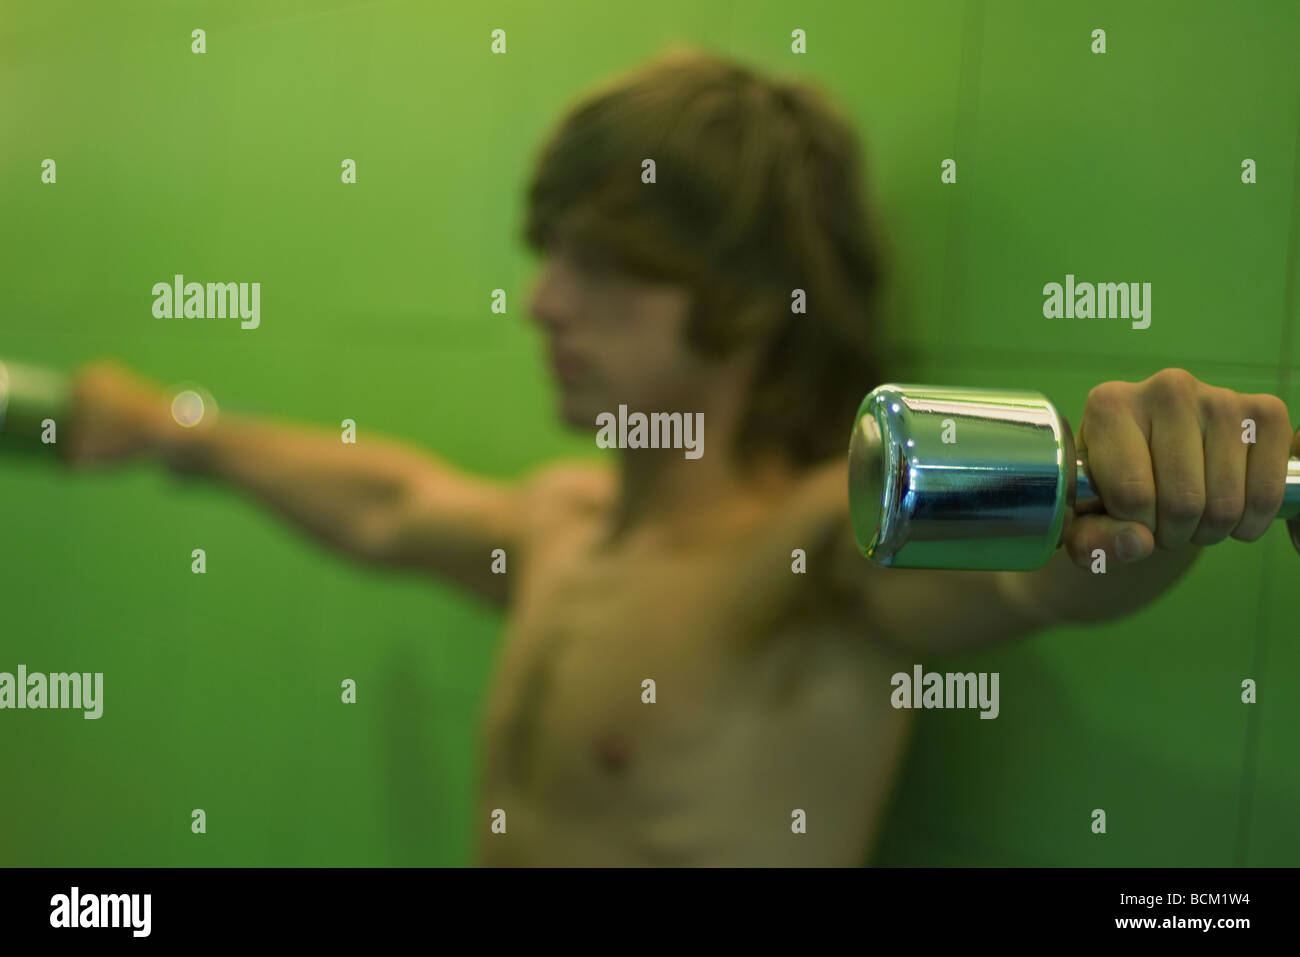 Young man holding dumbbells out to side, side view, focus on foreground Stock Photo